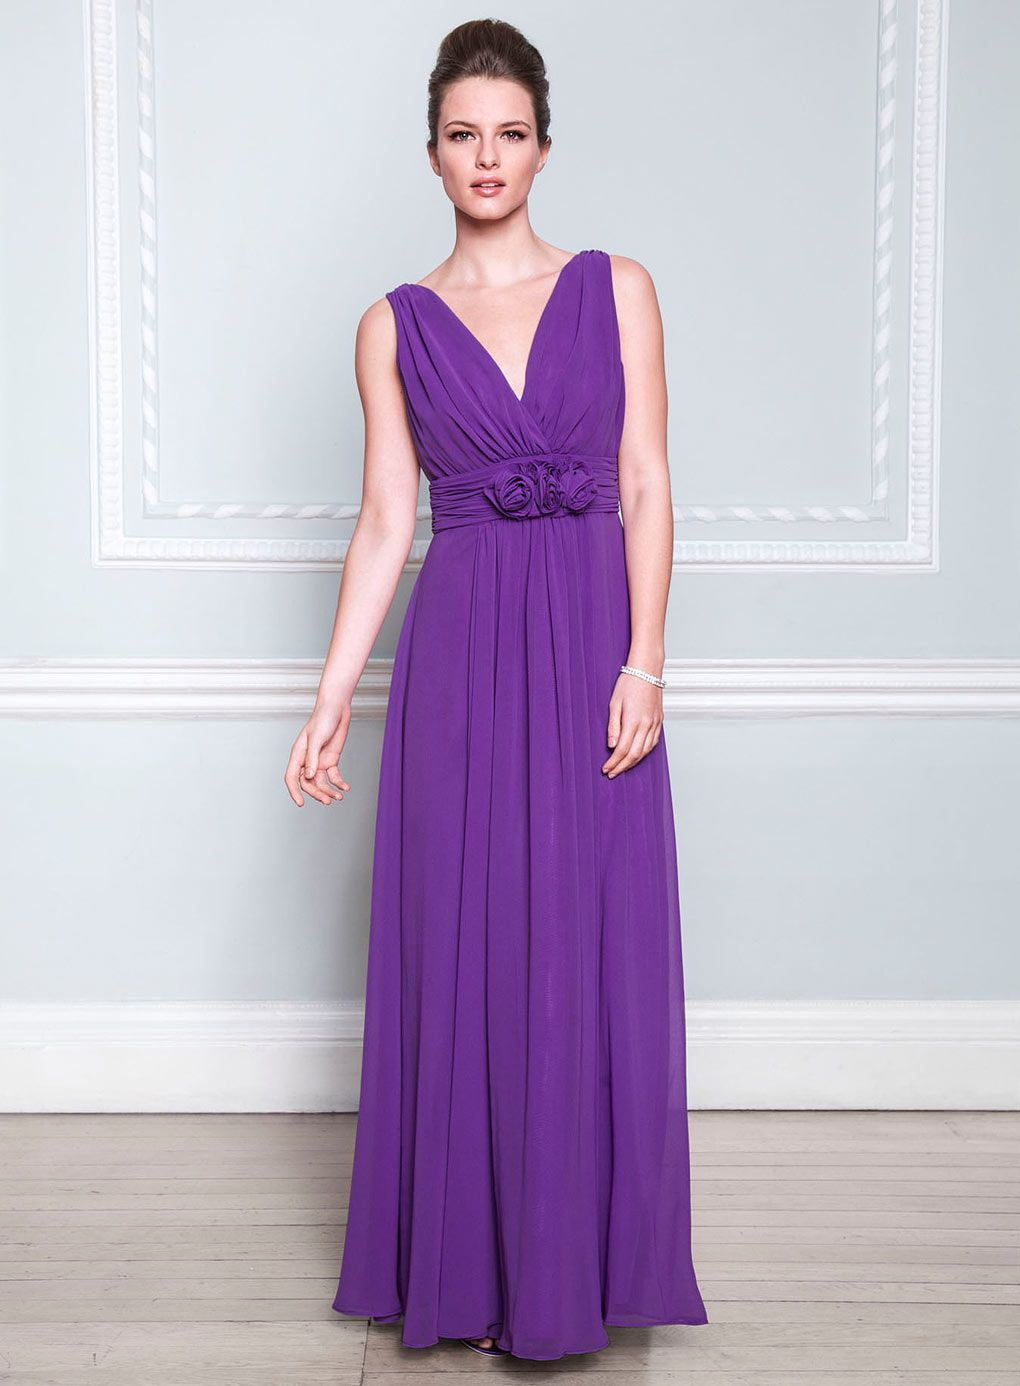 purple-floor-length-bridesmaid-dress-with-sleeves-1-1 | Purple ...